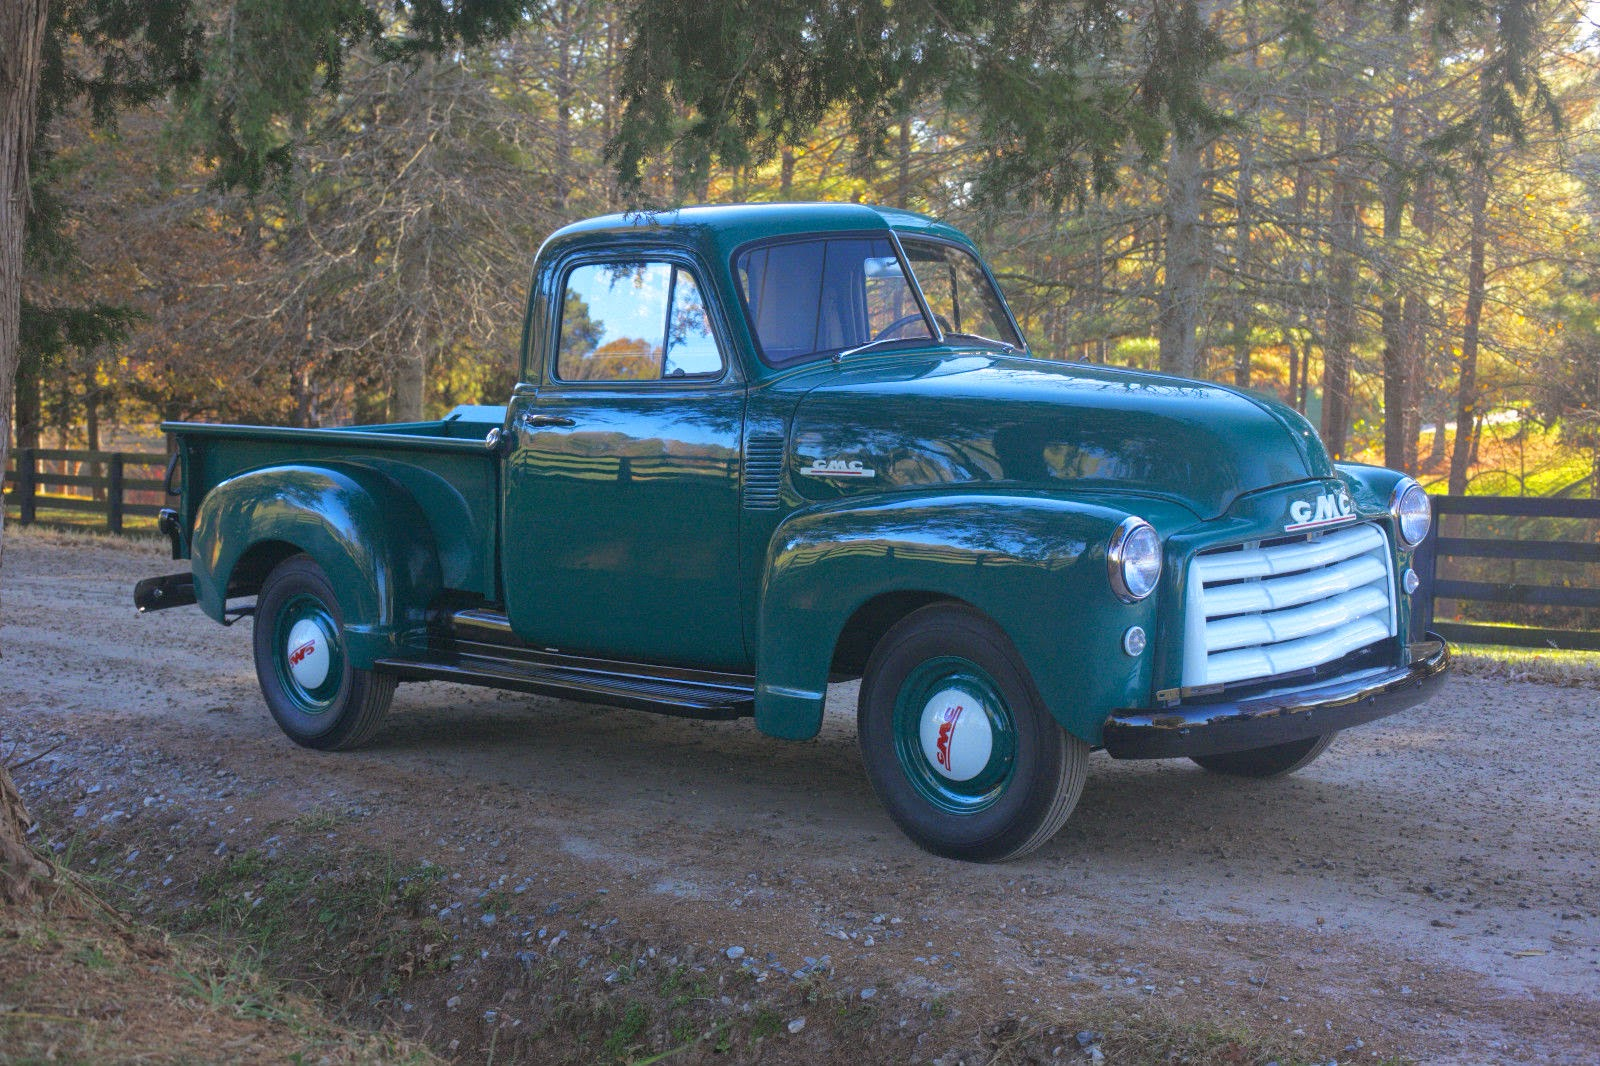 All American Classic Cars: 1952 GMC 1/2 Ton Pickup Truck